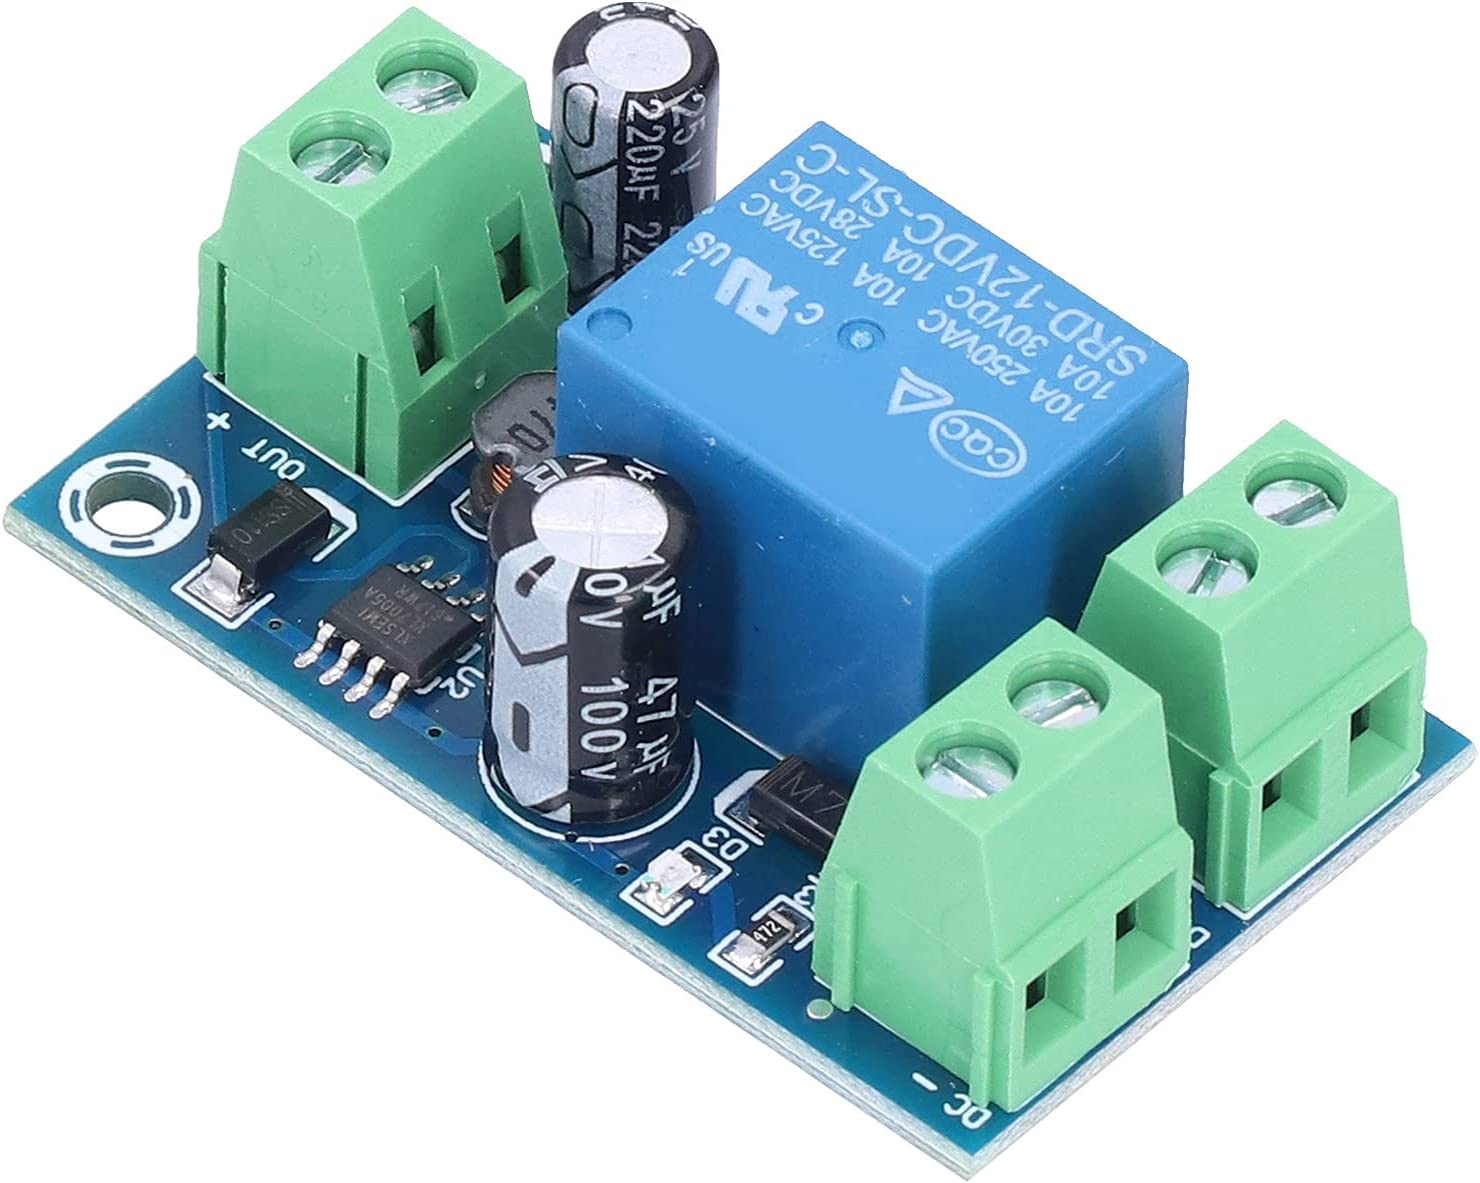 Battery Controller Module DC 12V to 48V Power Automatic Emergency Switch Power OFF Protection Board Relay Battery Charger Battery Protector